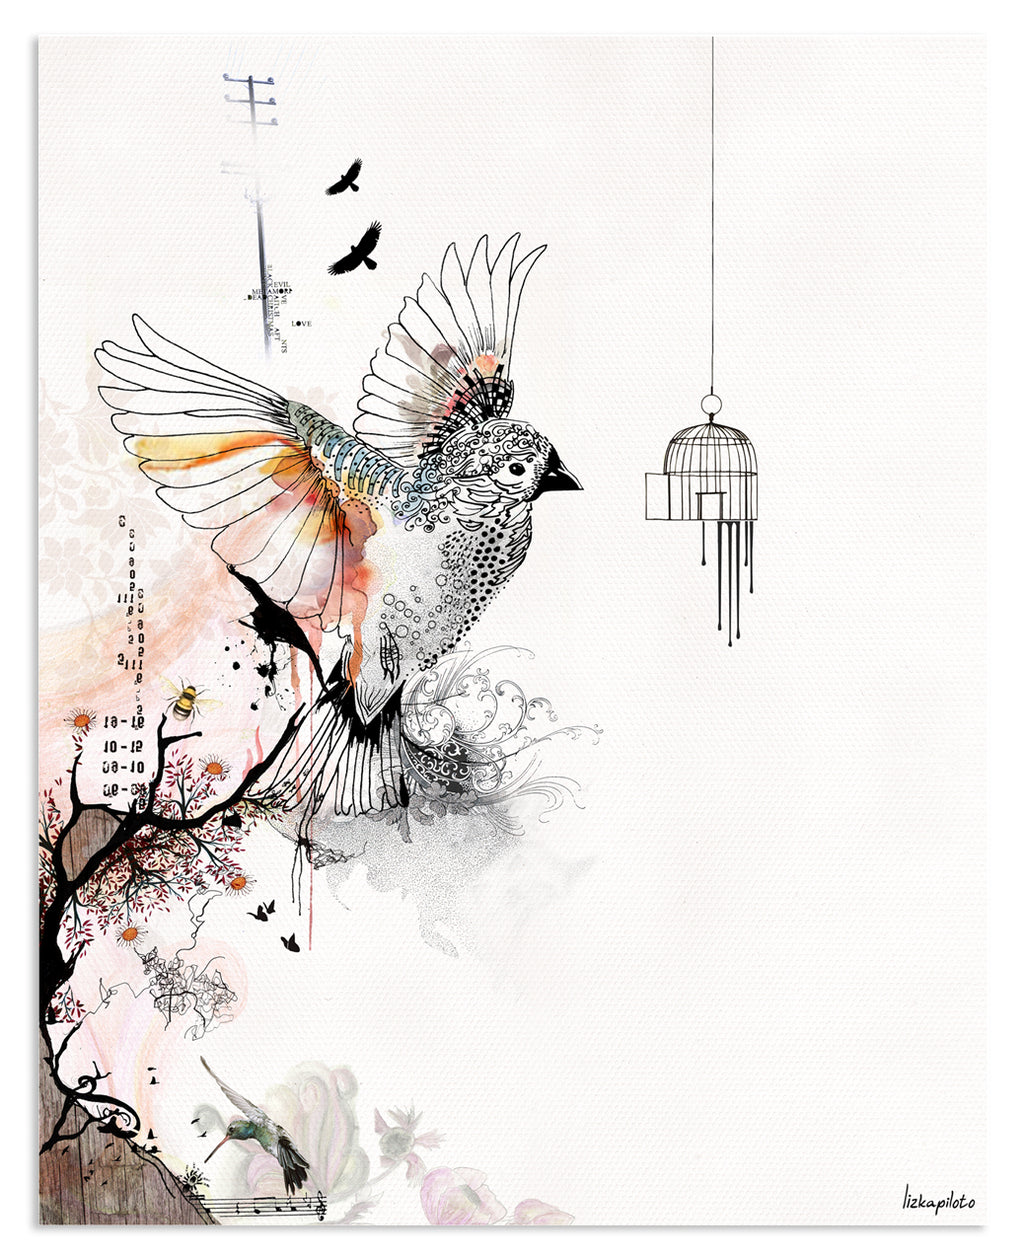 Flying Bird Painting - Liz Kapiloto Art & Design